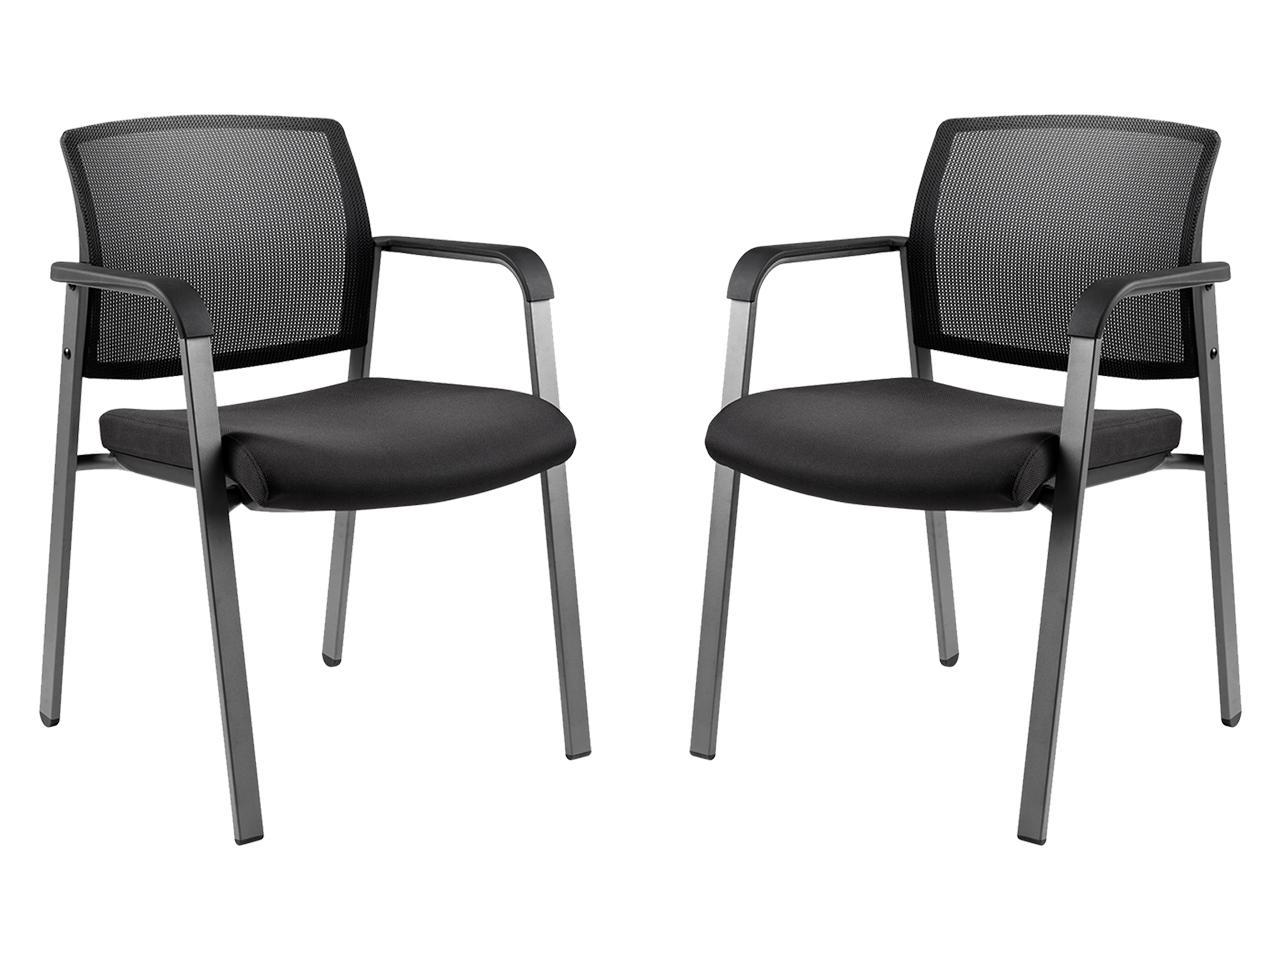 Picture of: Clatina Office Reception Chairs With Ergonomic Lumber Support And Mesh Guest Chair For Office Waiting Room Set Of 2 Black Newegg Com